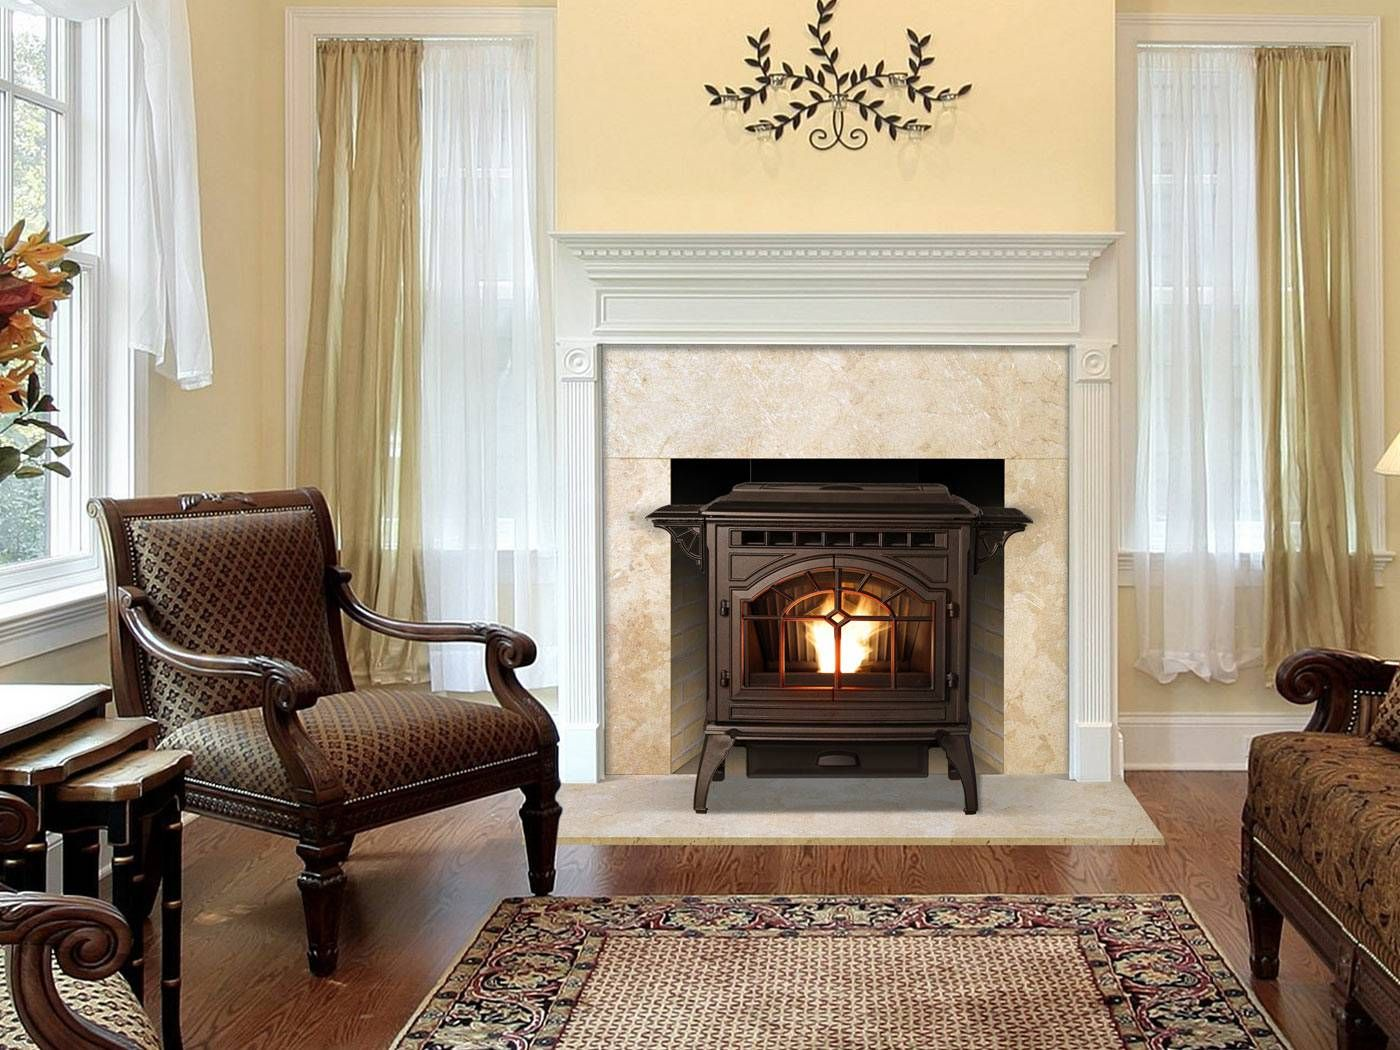 Which Is Better : Wood Stove vs Pellet Stove : Traditional Pellet Stoves  For Your Fireplace - Great Way To Hide The Piping For A Wood Stove! Home Decorating